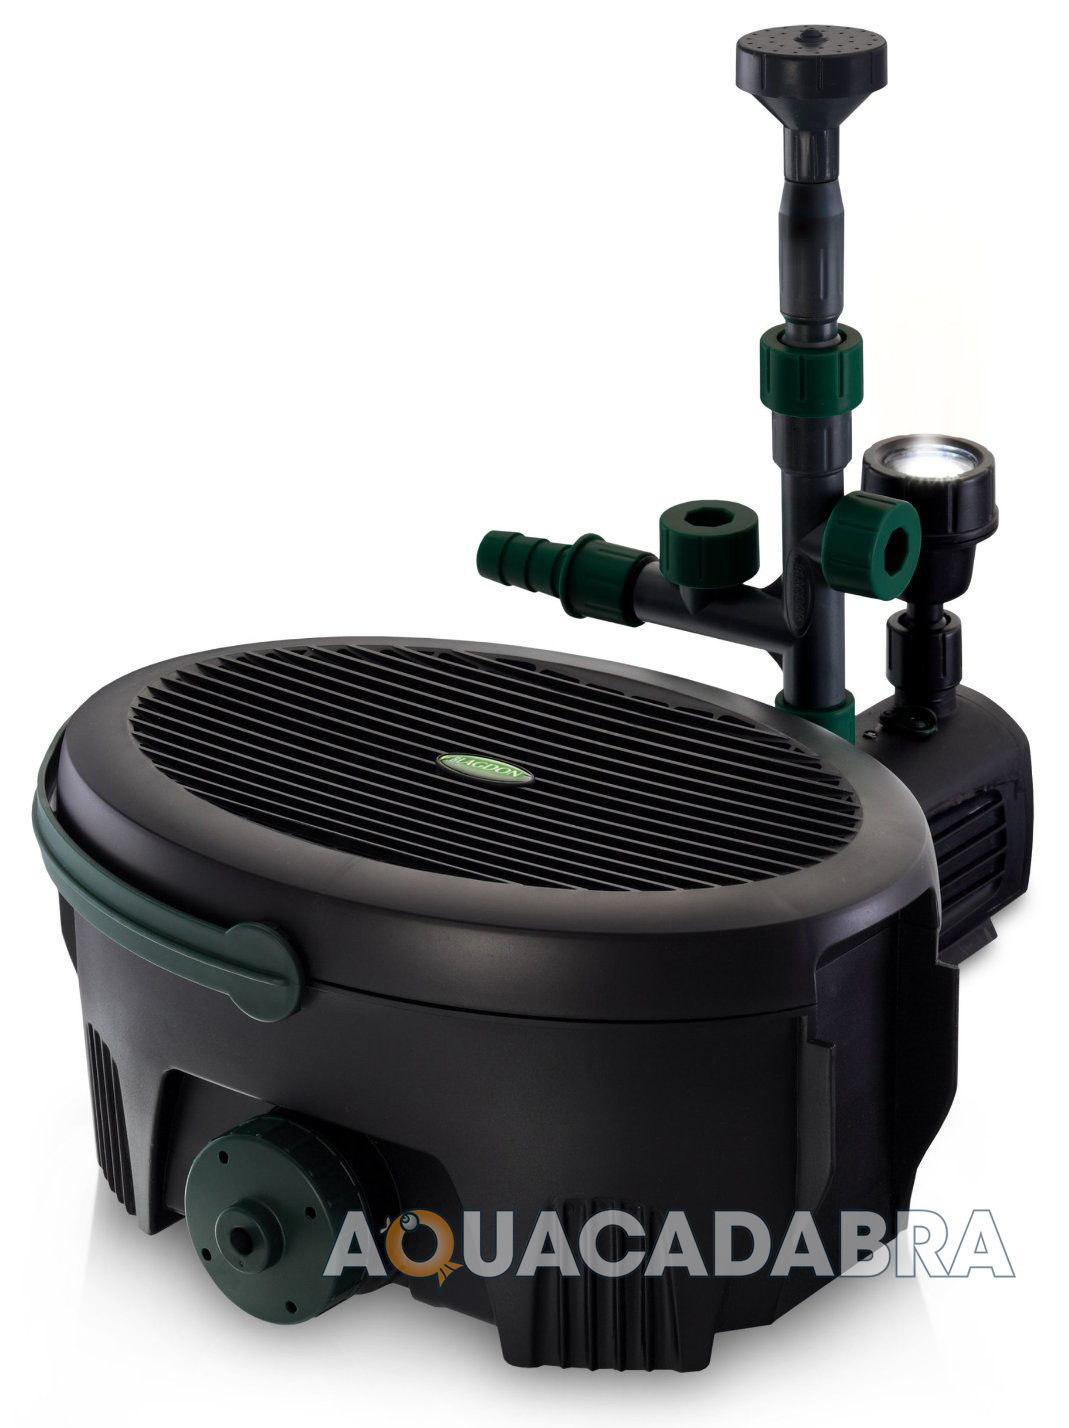 Blagdon inpond 5 in 1 6 in 1 pond pump filter uvc led for 2000 gallon pond pump